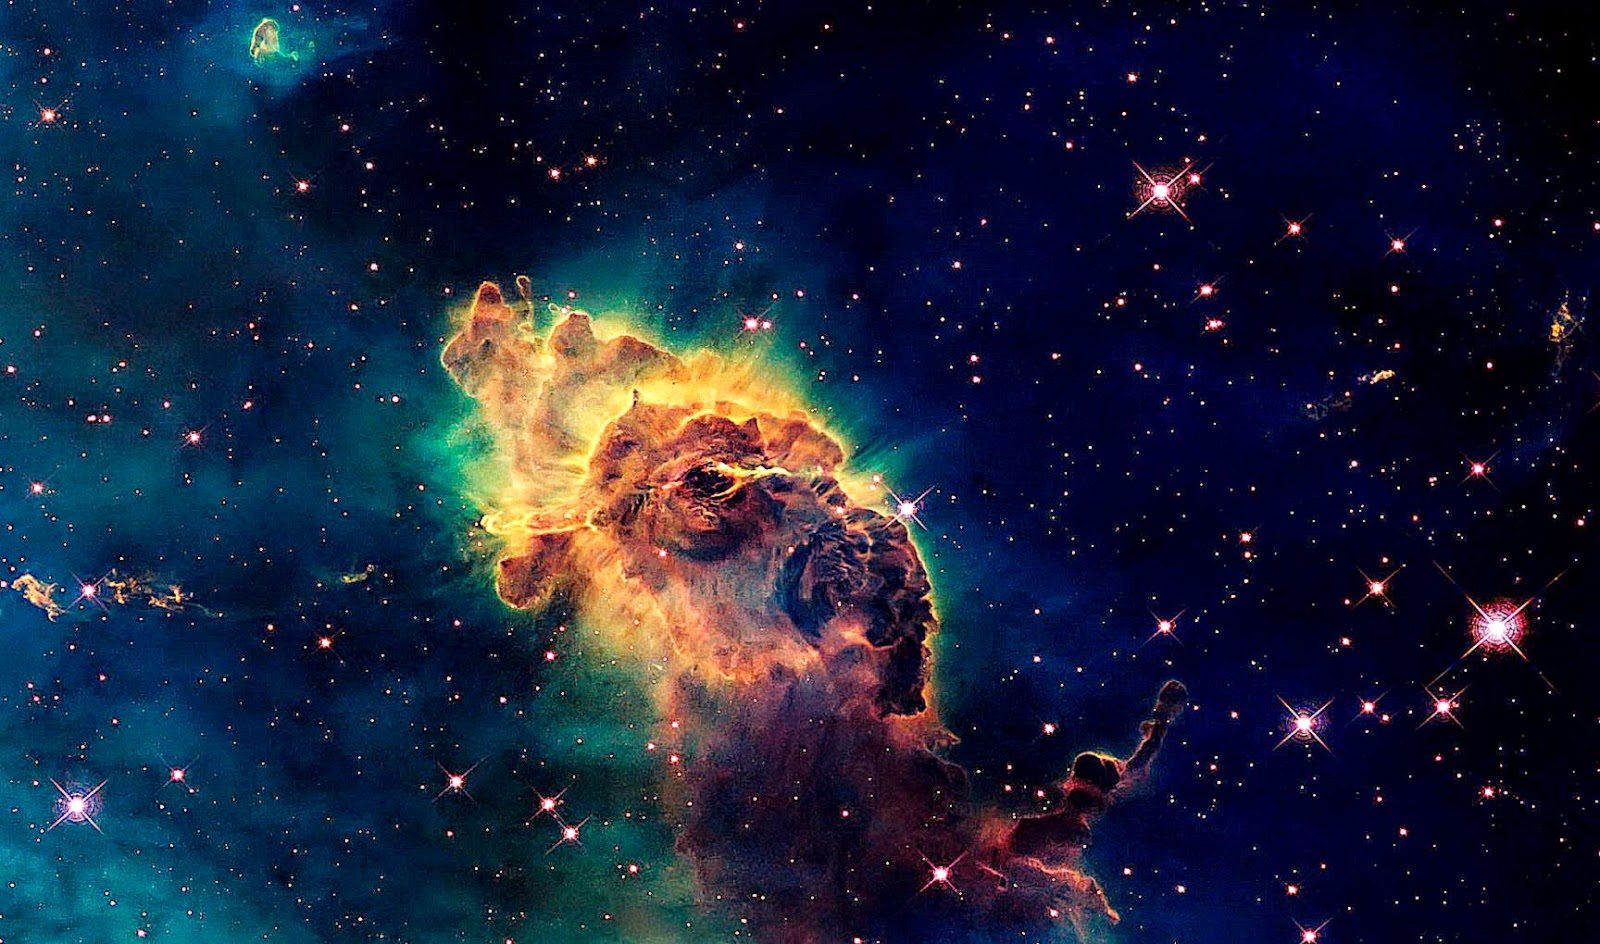 Space Galaxy Wallpaper Hd Cool HD Wallpapers 1600x944